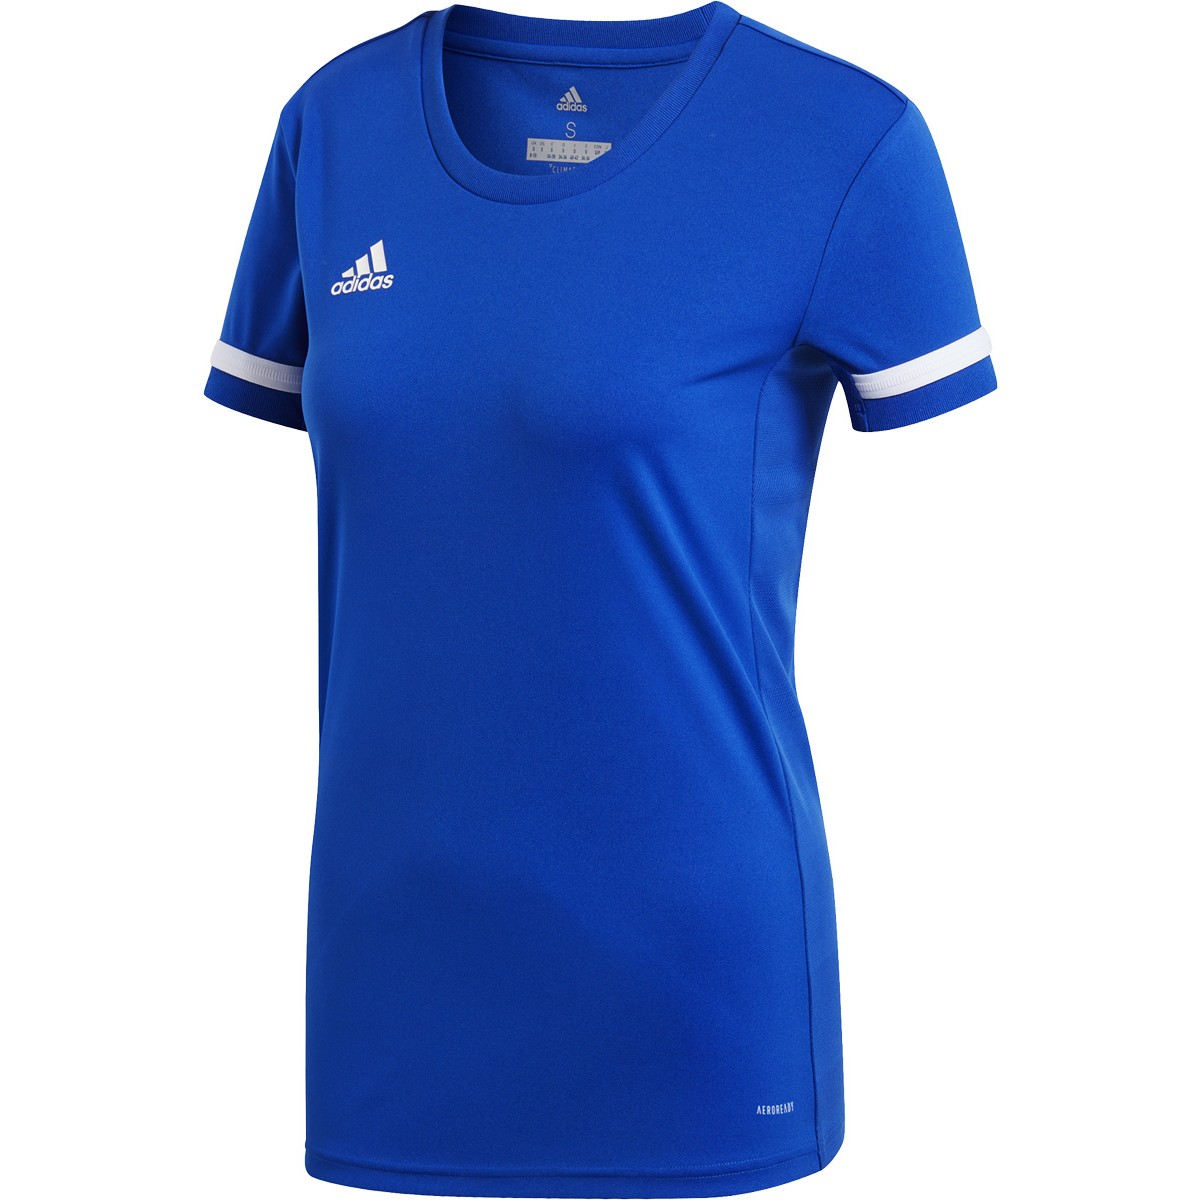 offer discounts shopping reliable quality WOMEN'S ADIDAS T19 T-SHIRT - ADIDAS - Women's - Clothing ...